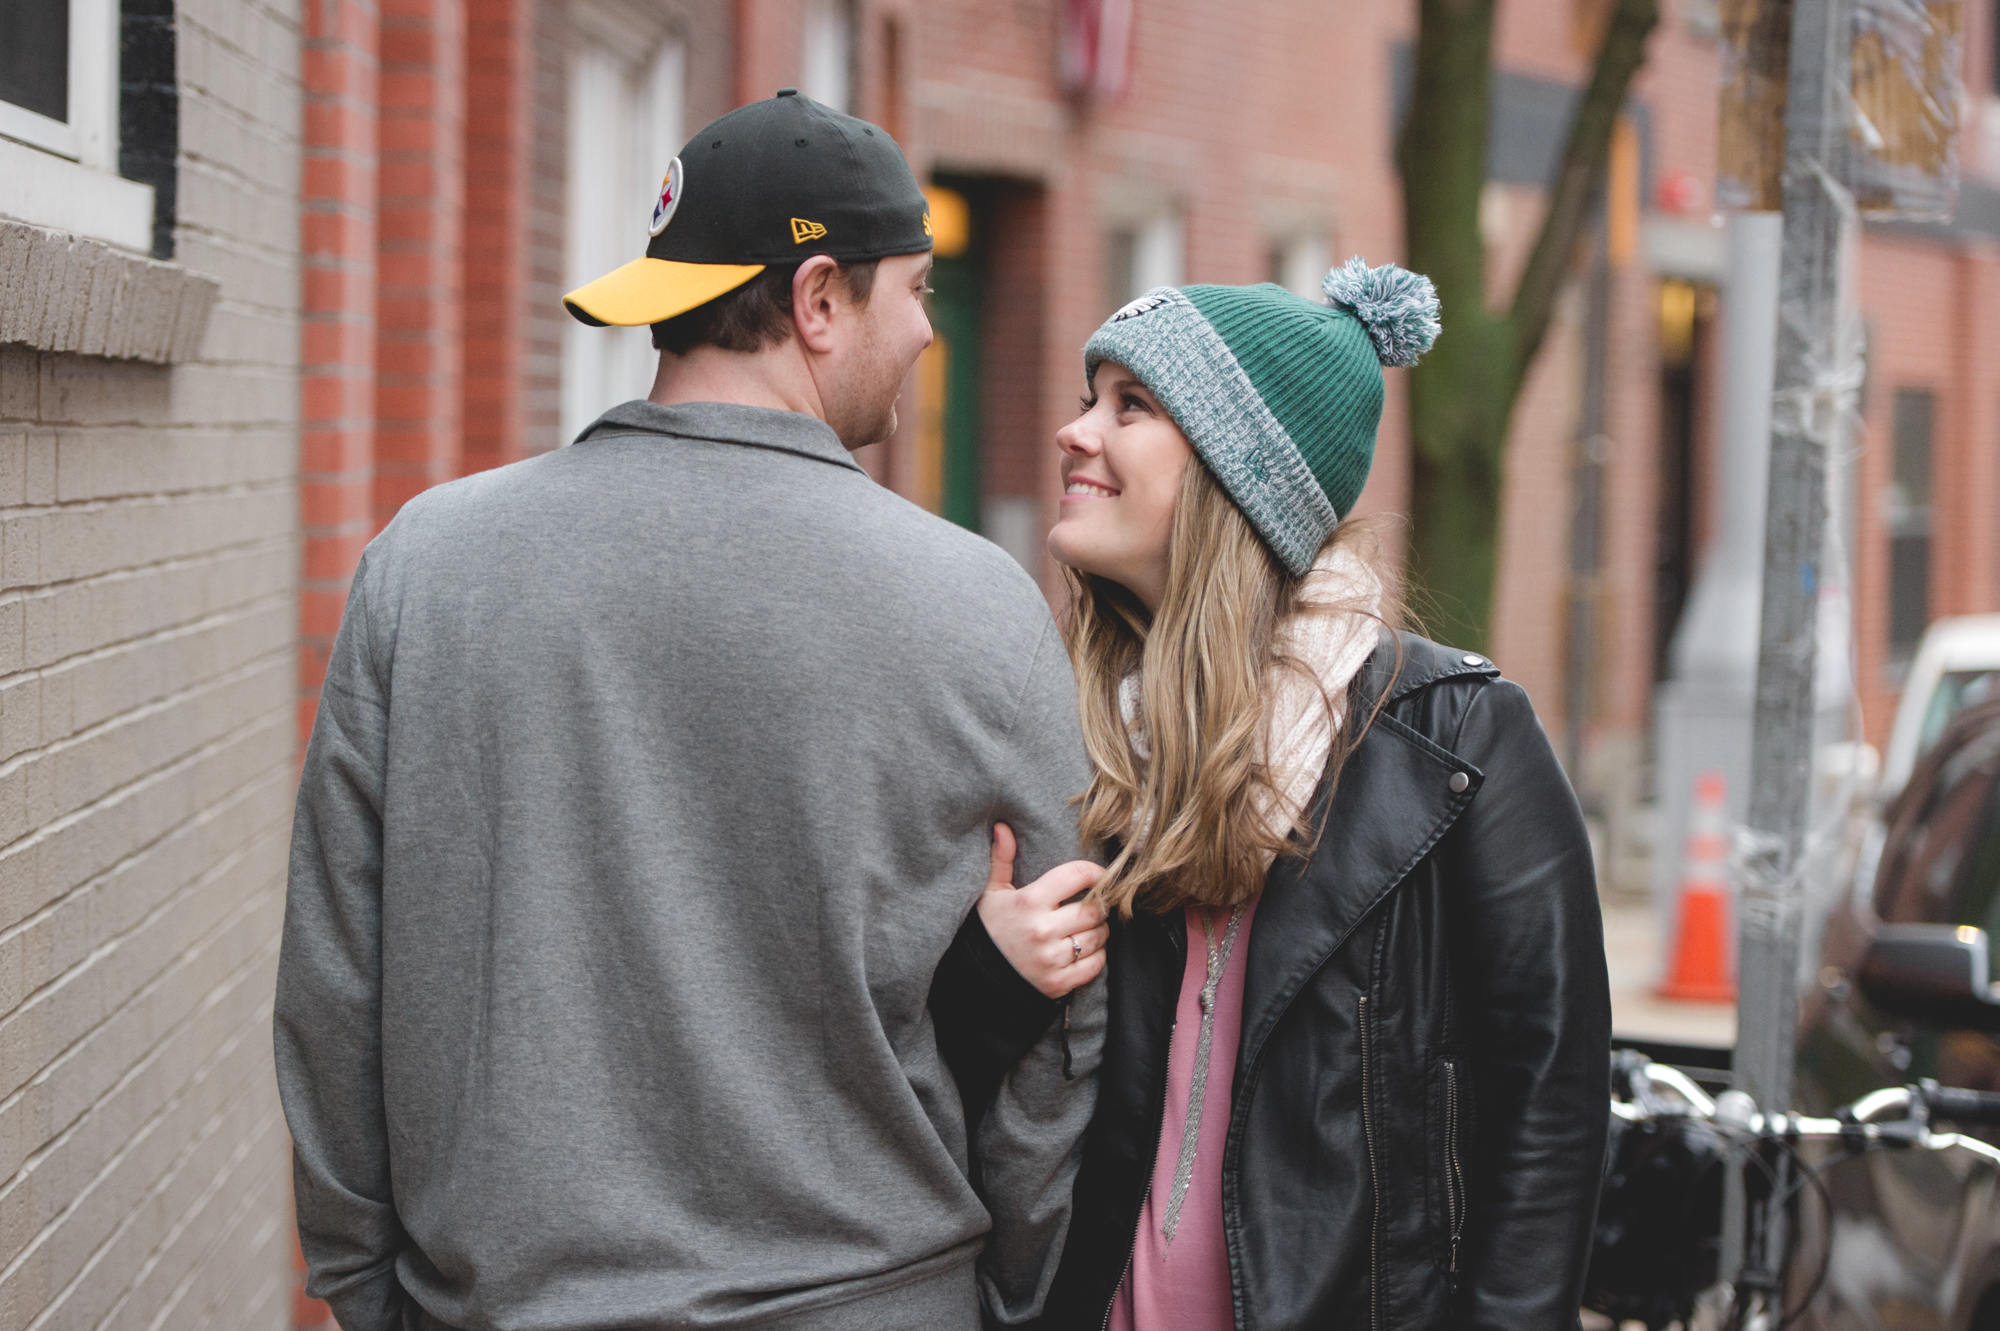 This engagement session was taken right after the Philadelphia Eagles won the Super Bowl.